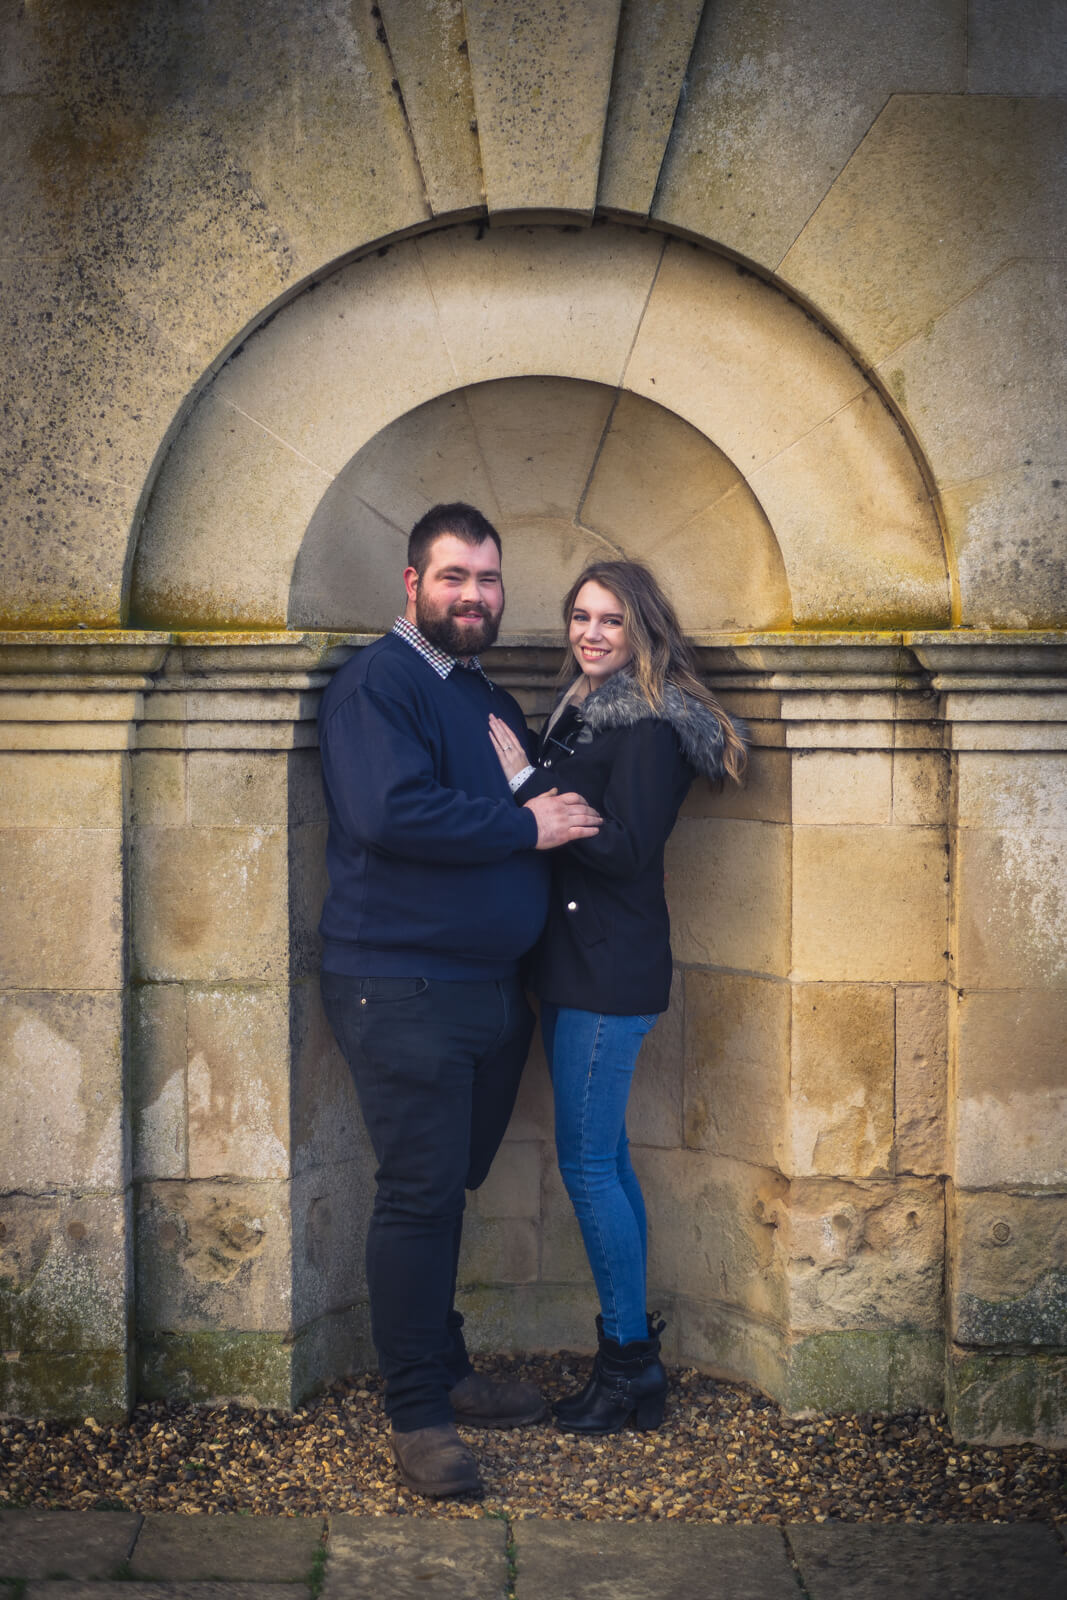 Young couple stand in a stone arch together